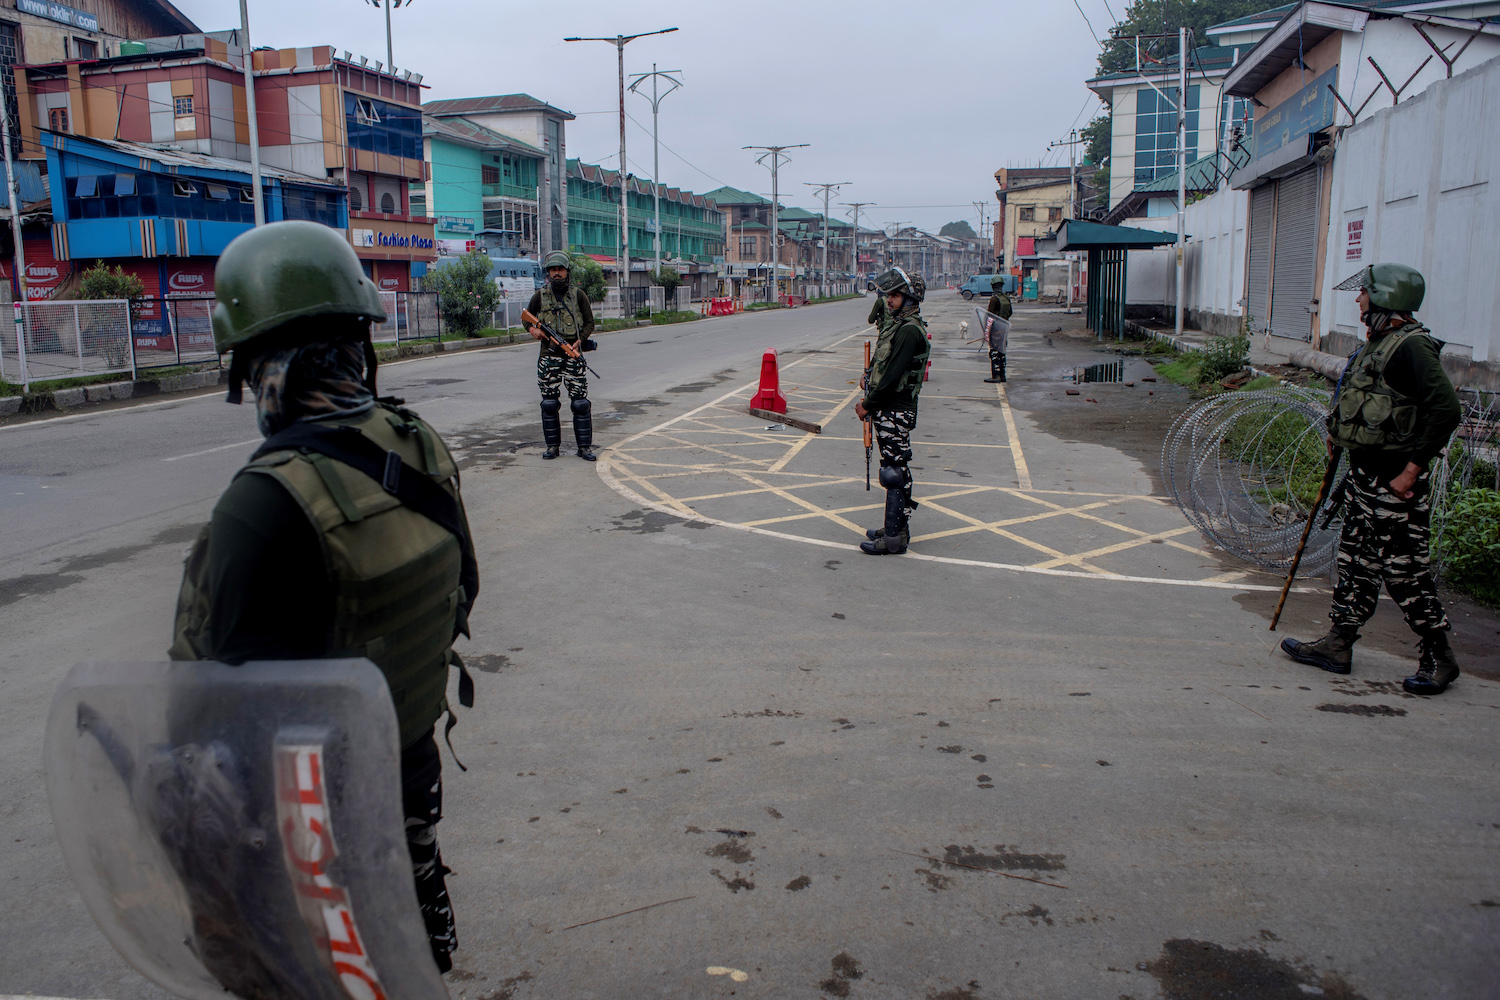 Indian government forces stand guard in the deserted city center of Srinagar on Aug. 15.